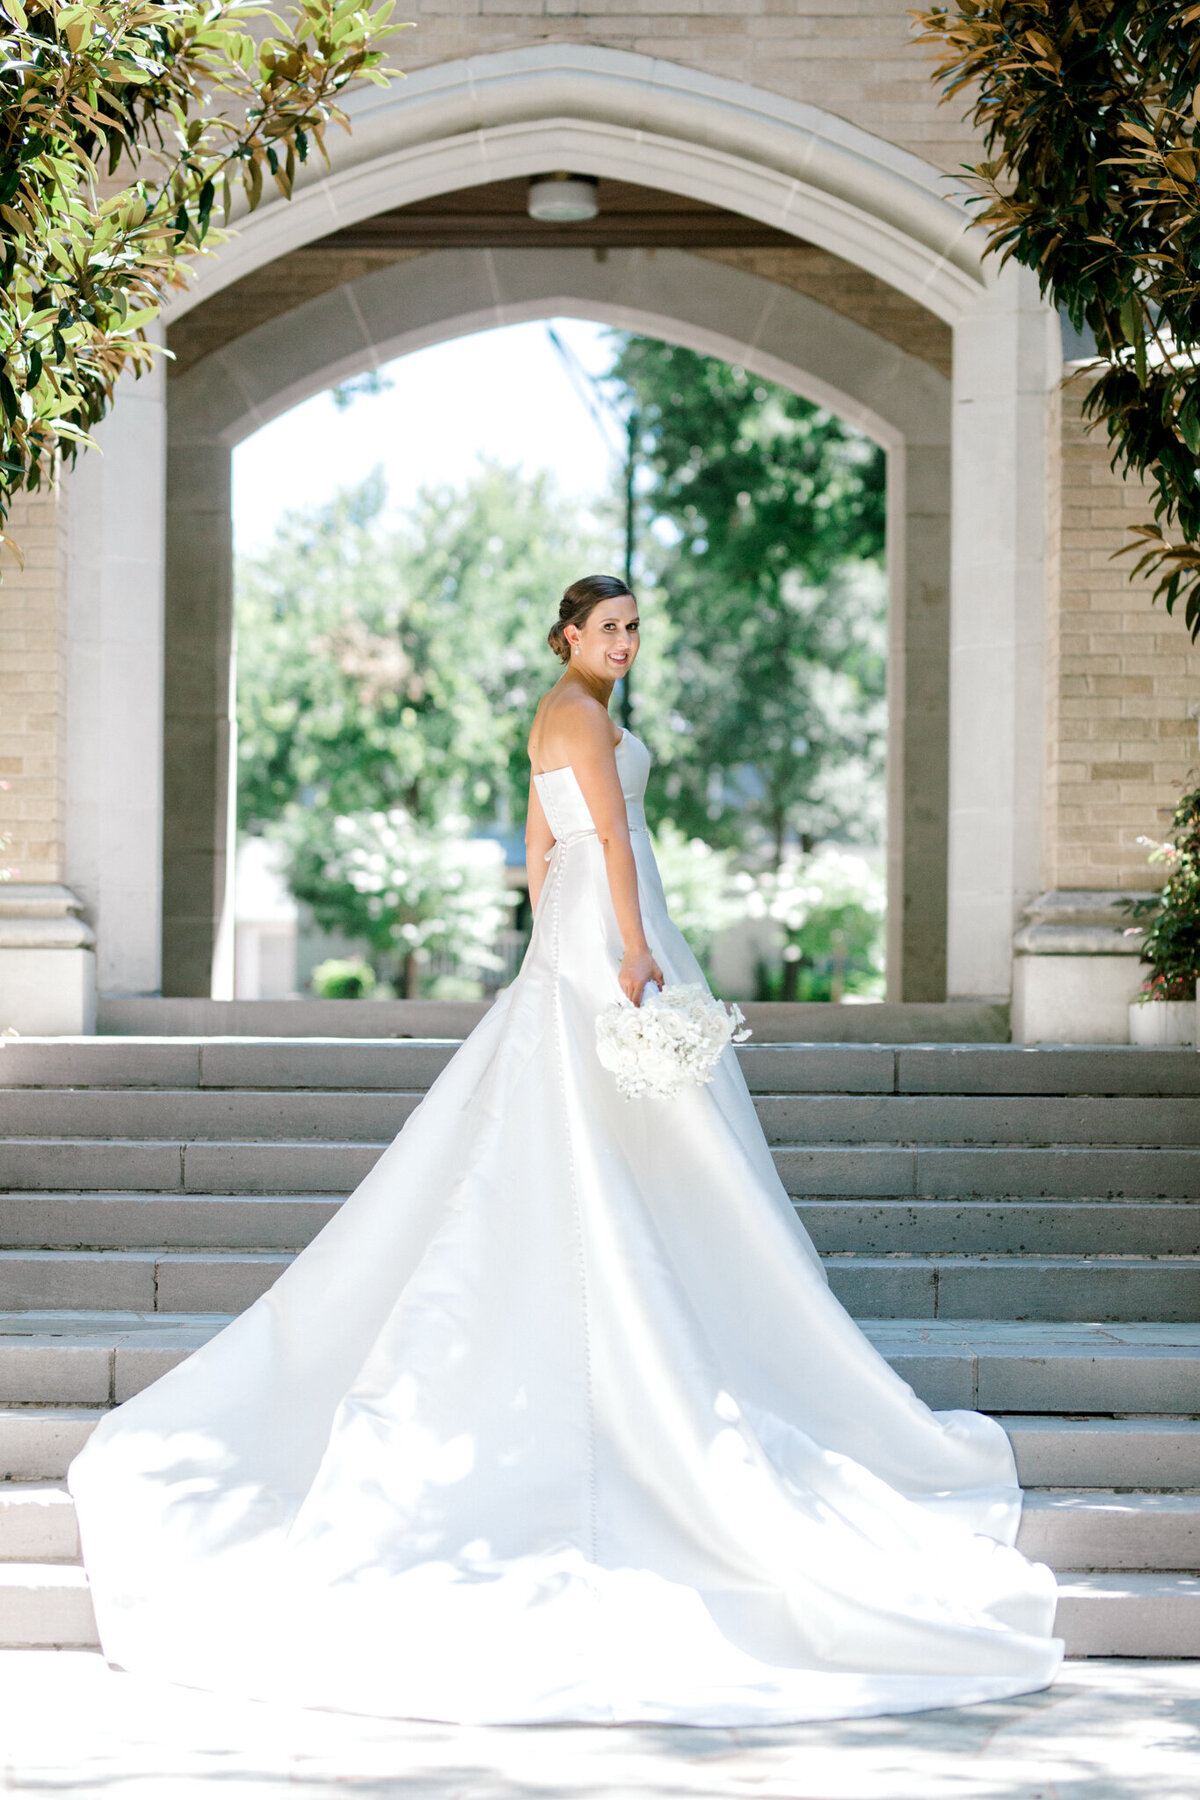 Wedding at the Crescent Court Hotel and Highland Park United Methodist Church in Dallas | Sami Kathryn Photography | DFW Wedding Photographer-101